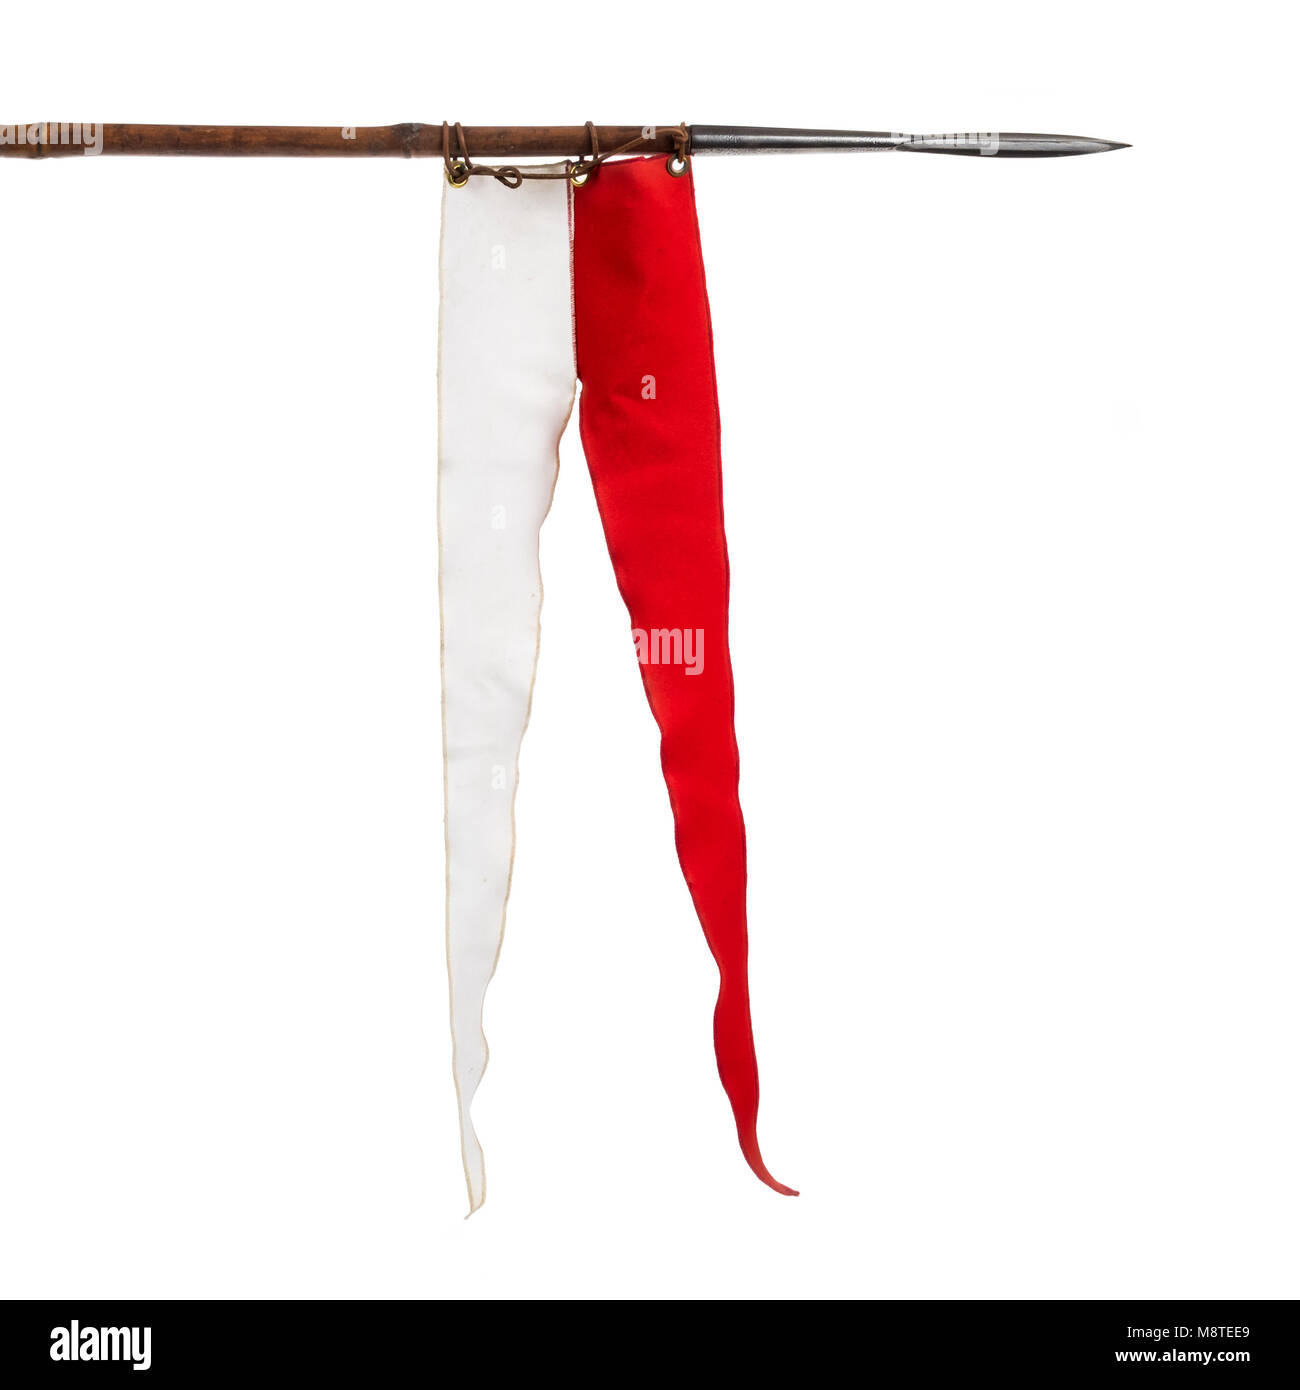 Victorian 1860 Pattern British cavalry lance with bamboo shaft, steel head and she, and red and white pennant - Stock Image